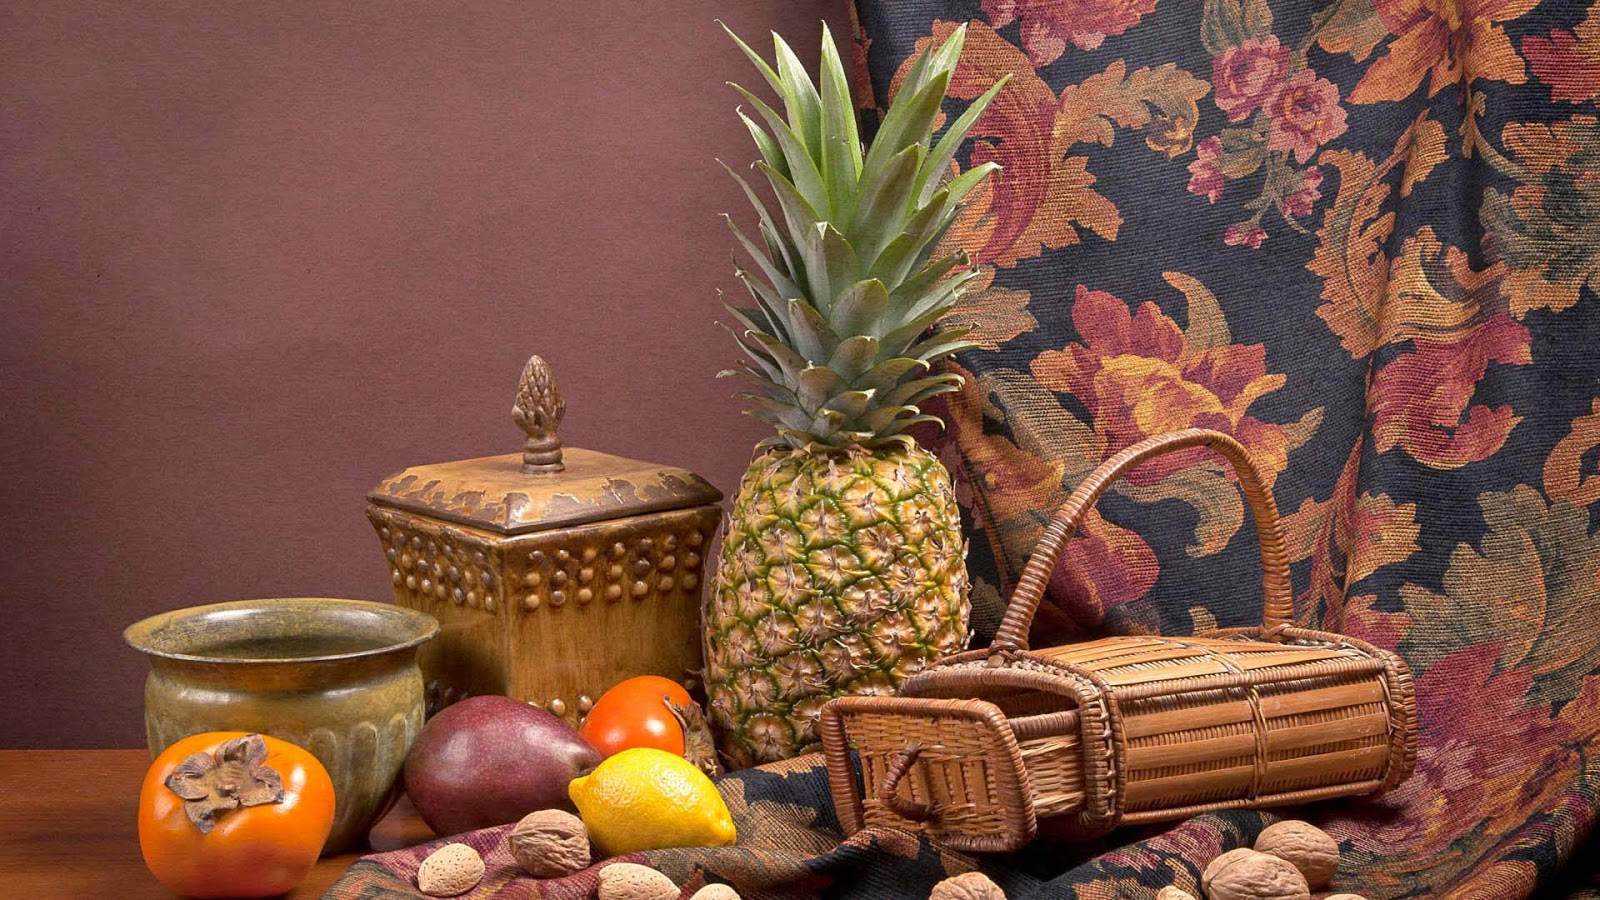 old-loook-images-of-fruits